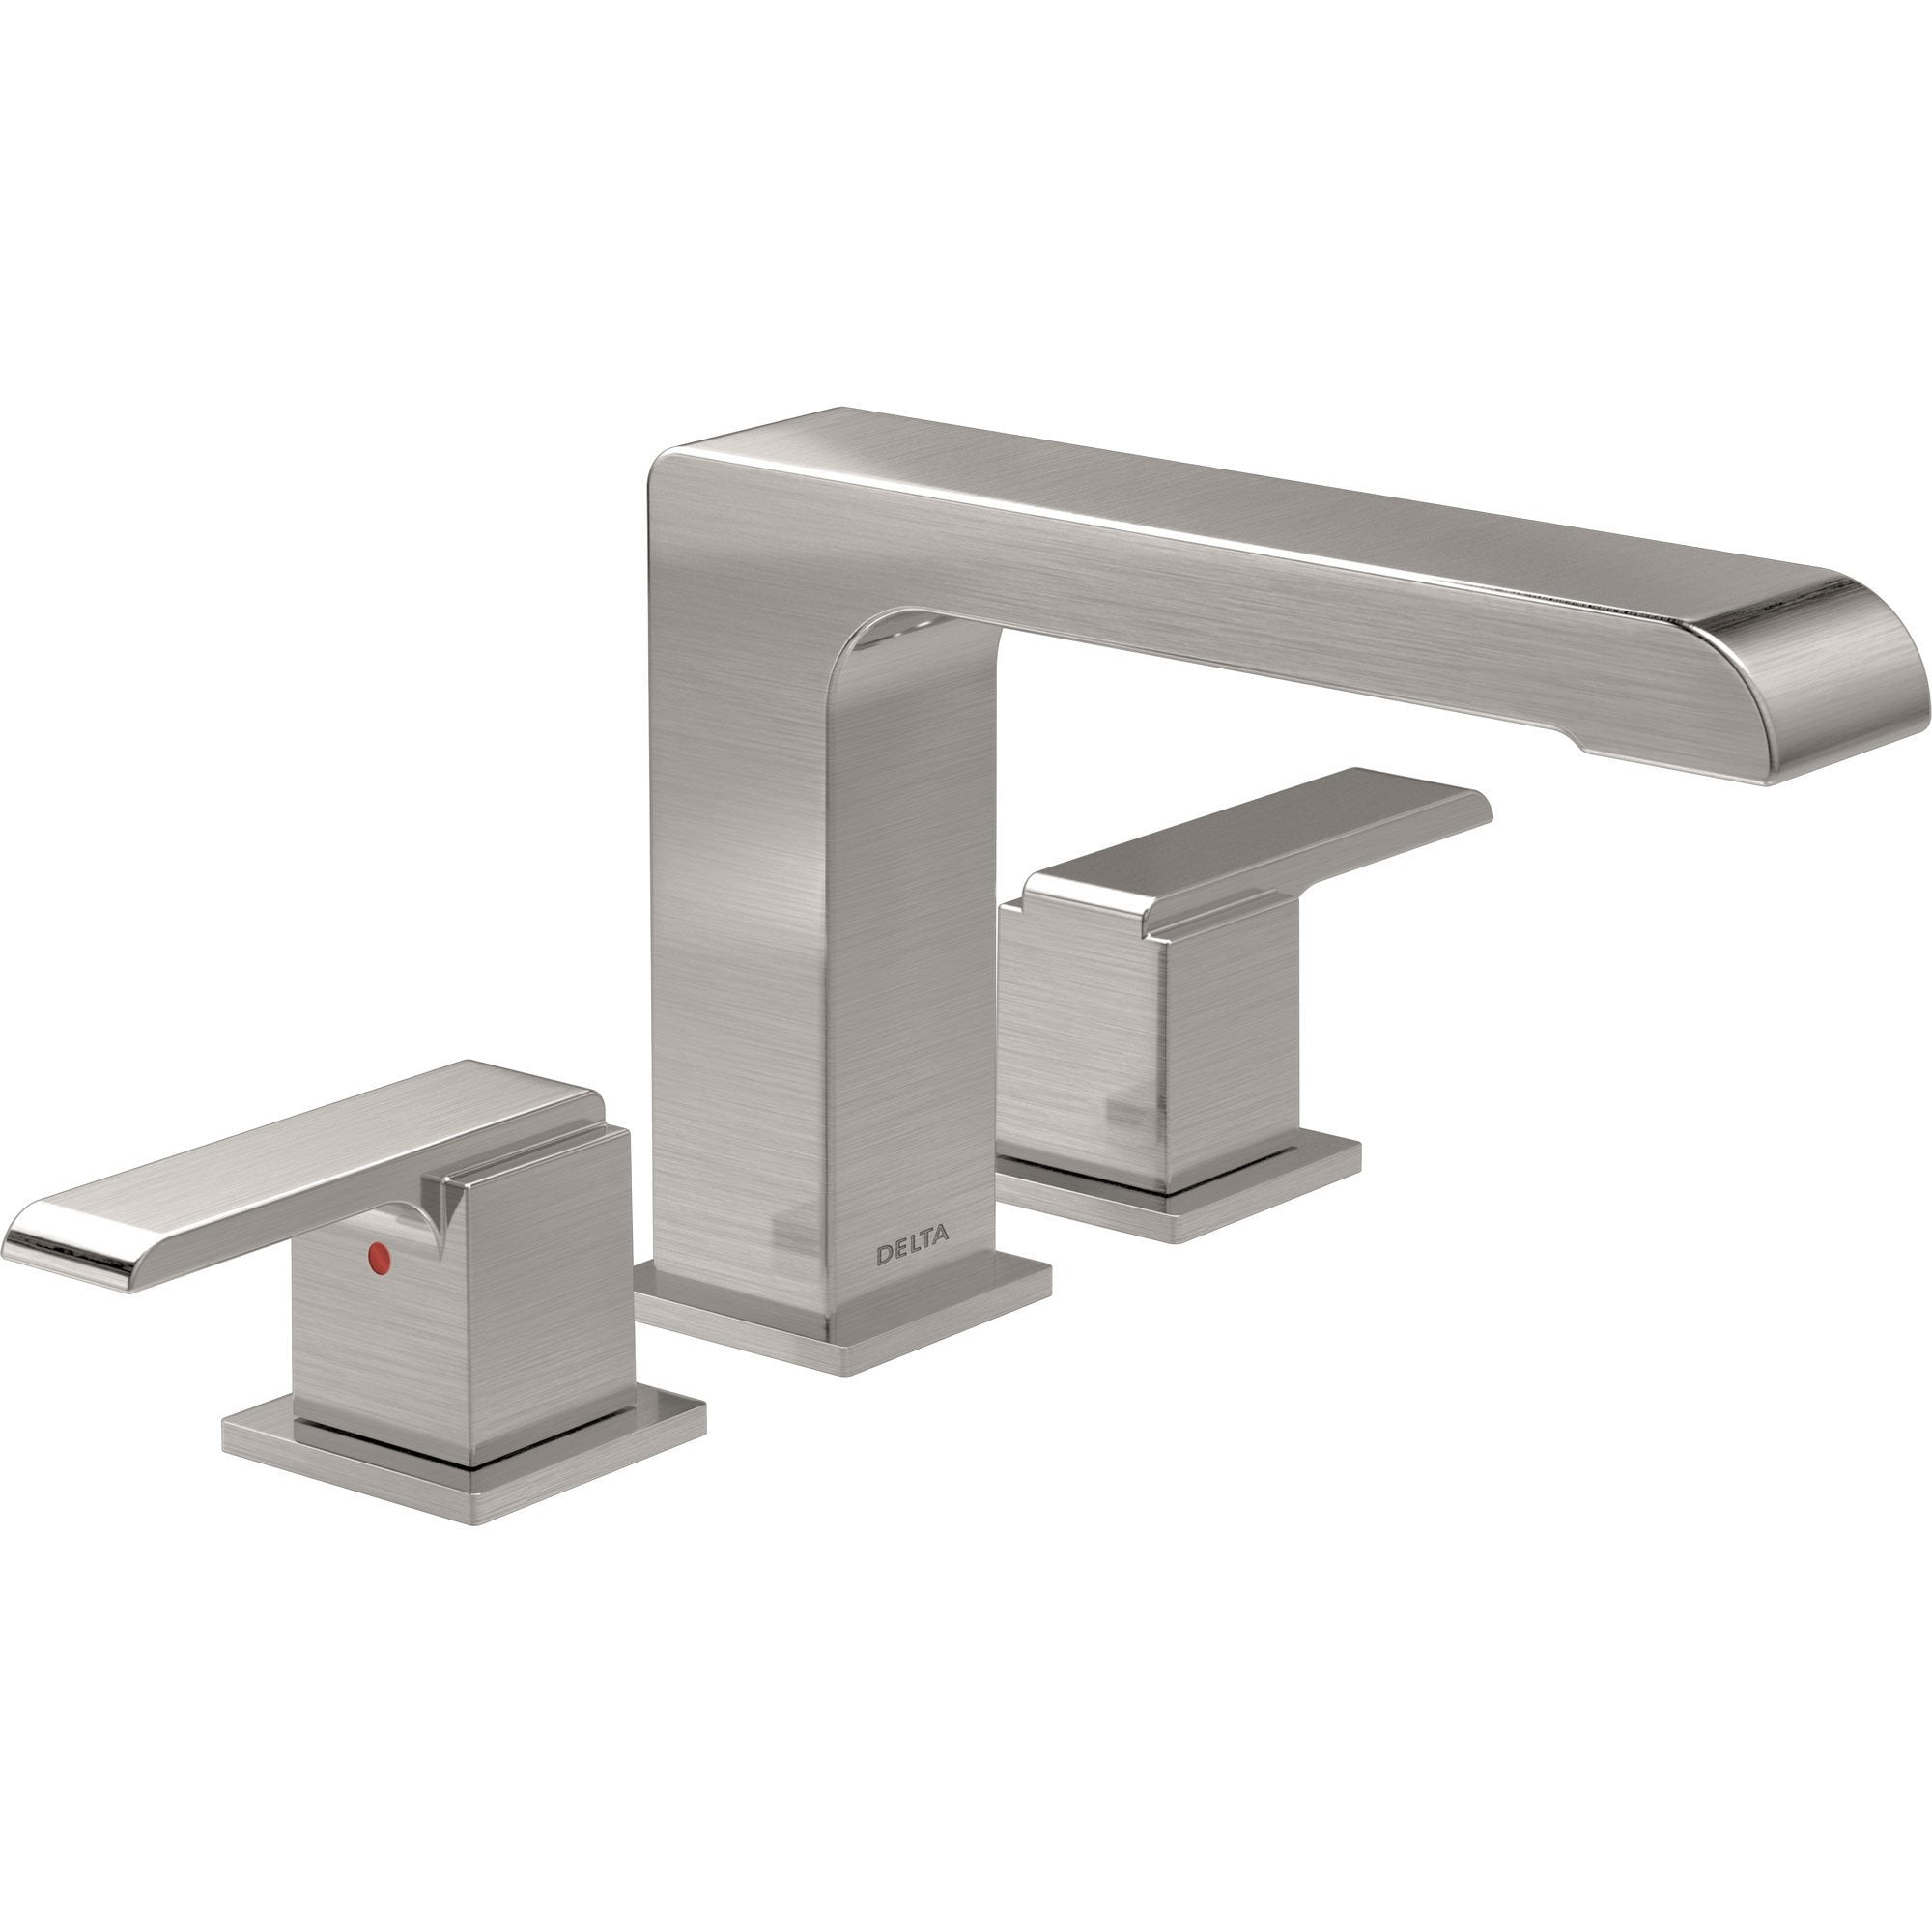 Delta Ara Modern Stainless Steel Finish Roman Tub Filler Faucet INCLUDES Valve and Lever Handles D1090V